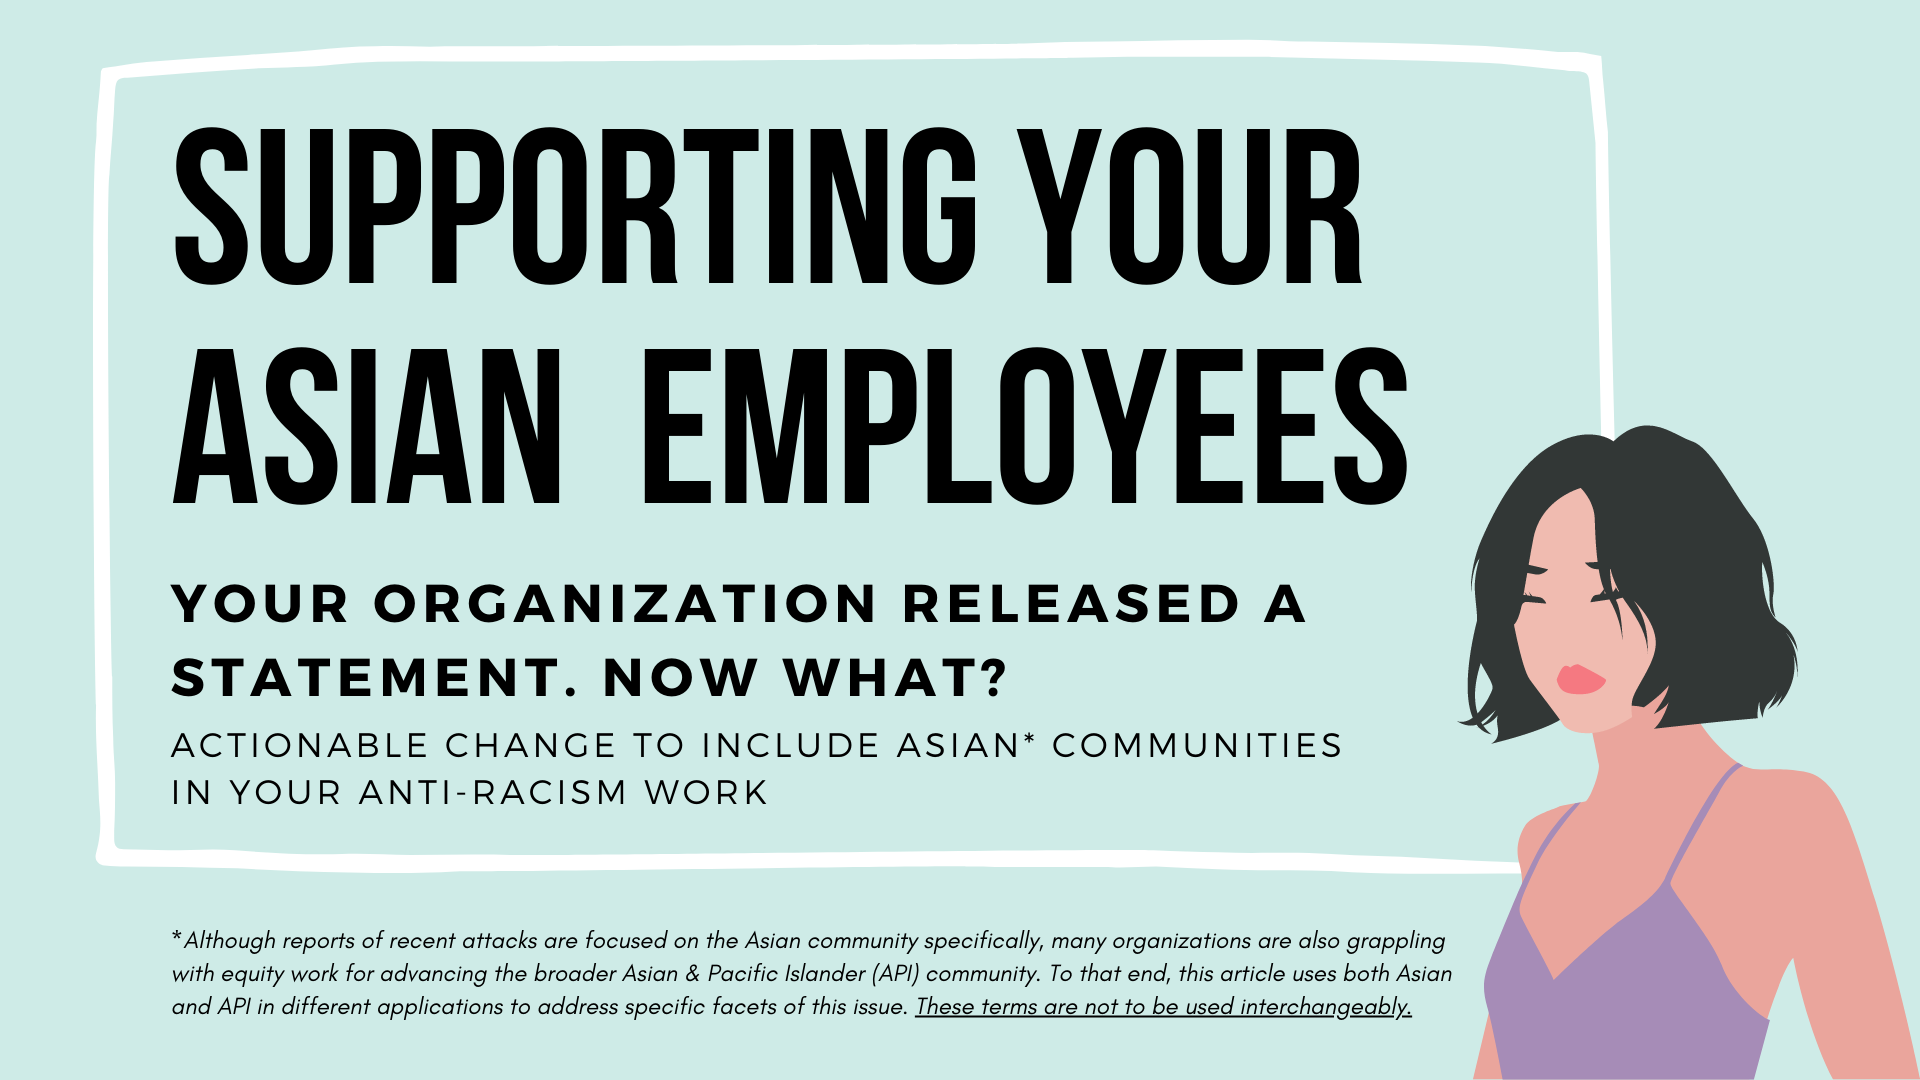 "A transparent box with a white border against a teal background. Inside the box is the title ""supporting your Asian employees."" Underneath this title is the text ""your organization released a statement. Now what? Actionable change to include Asian communities in your anti-racism work."" Illustration of an Asian woman with short black hair and a purple tank top in the bottom right corner. Below the box is text noting that Asian and API terminology in the article is not to be used interchangeably."